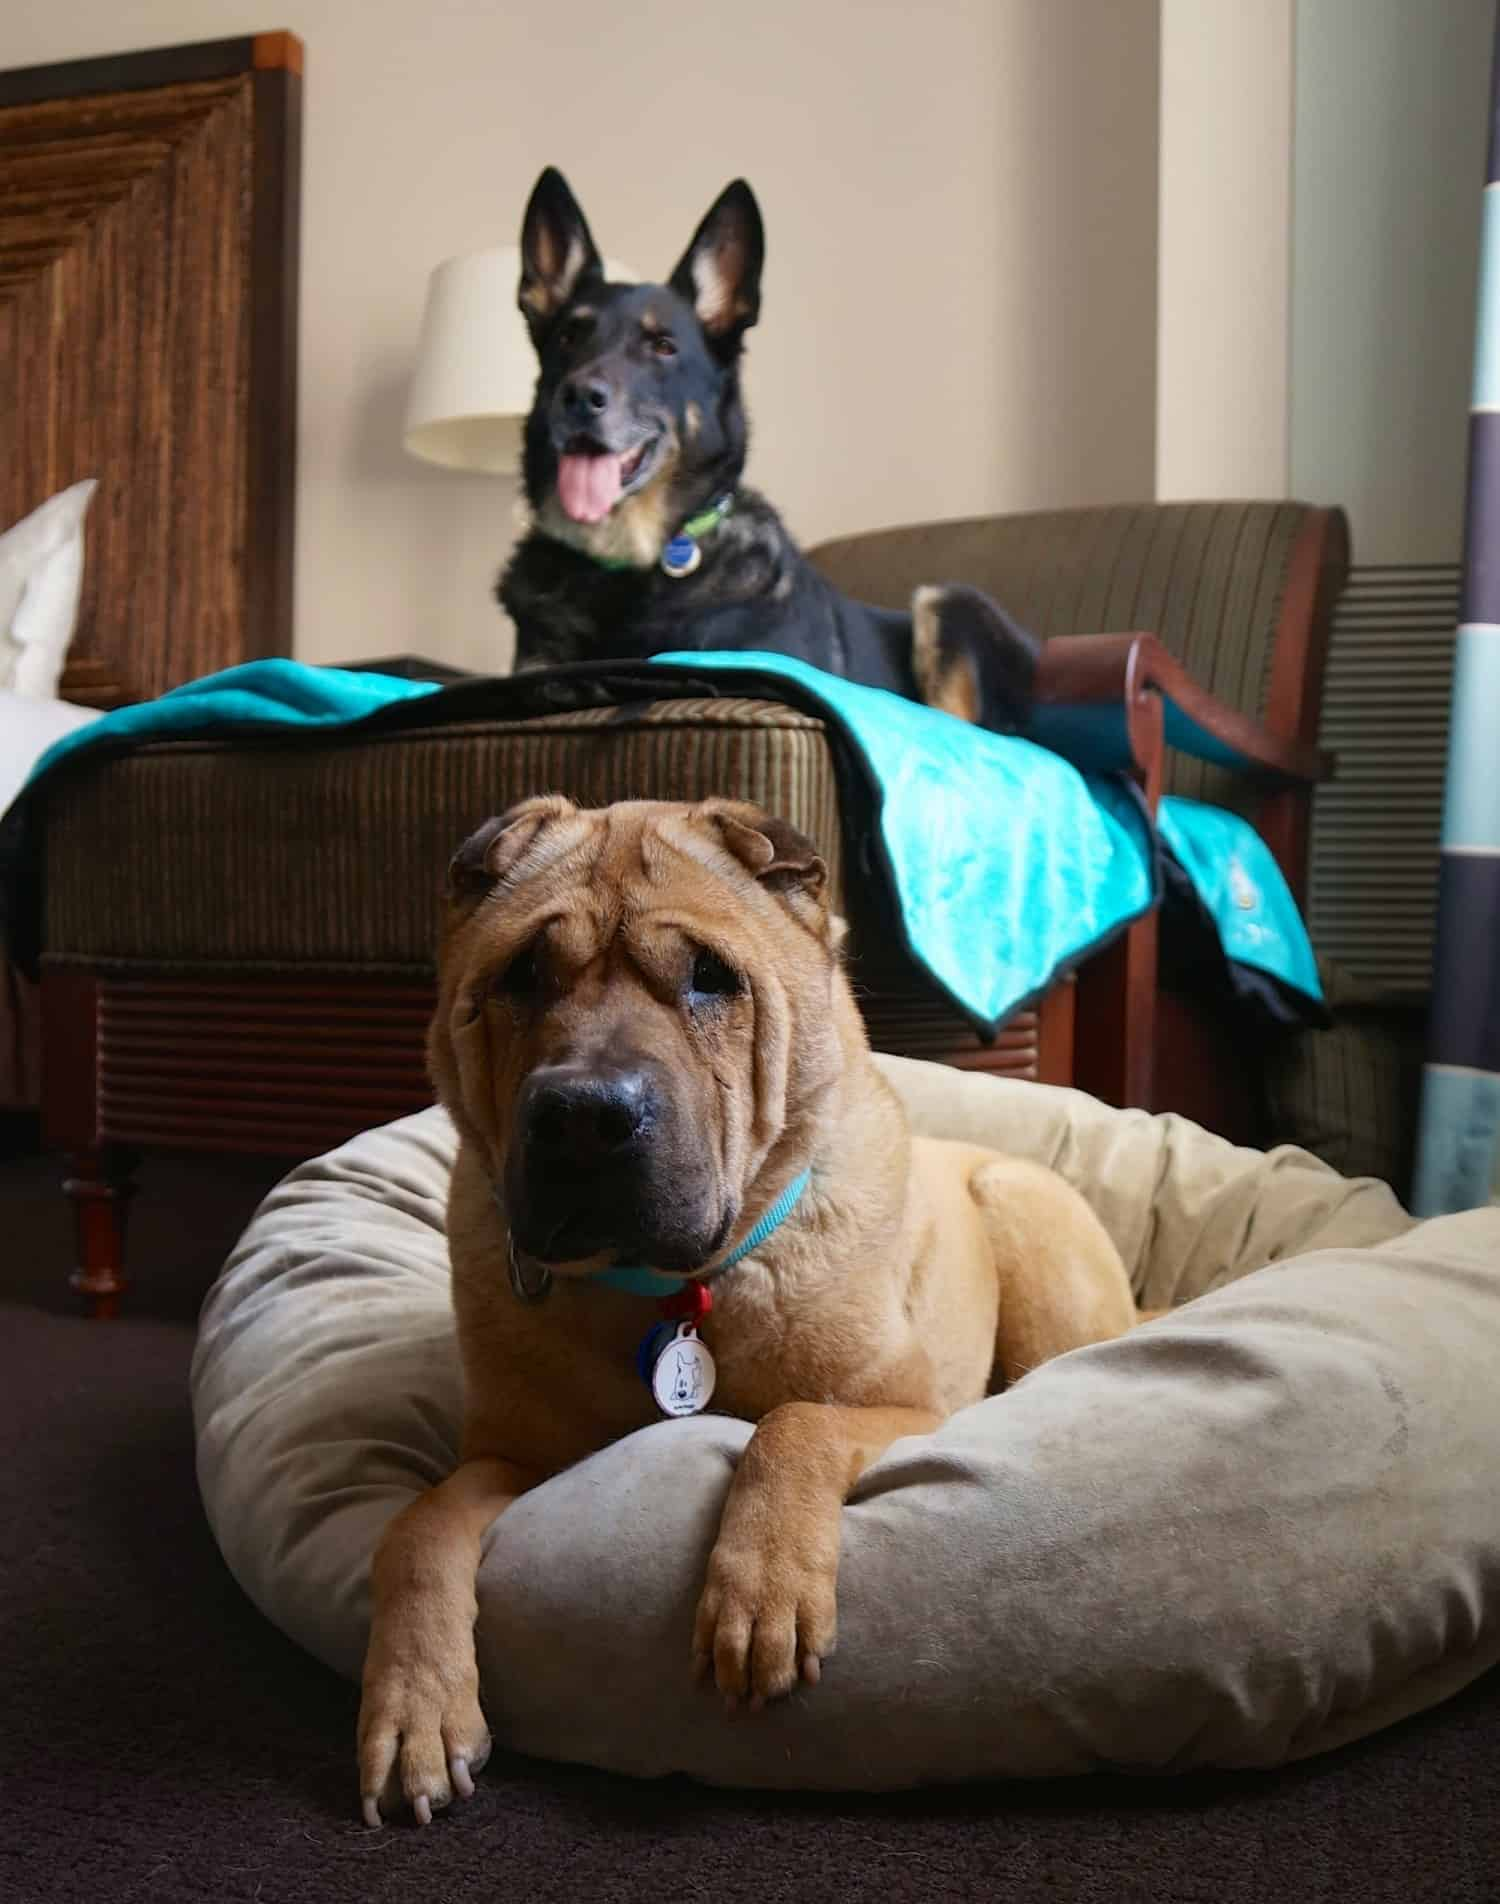 Dogs - Ty and Buster at Hotel Salomar - San Diego, CA